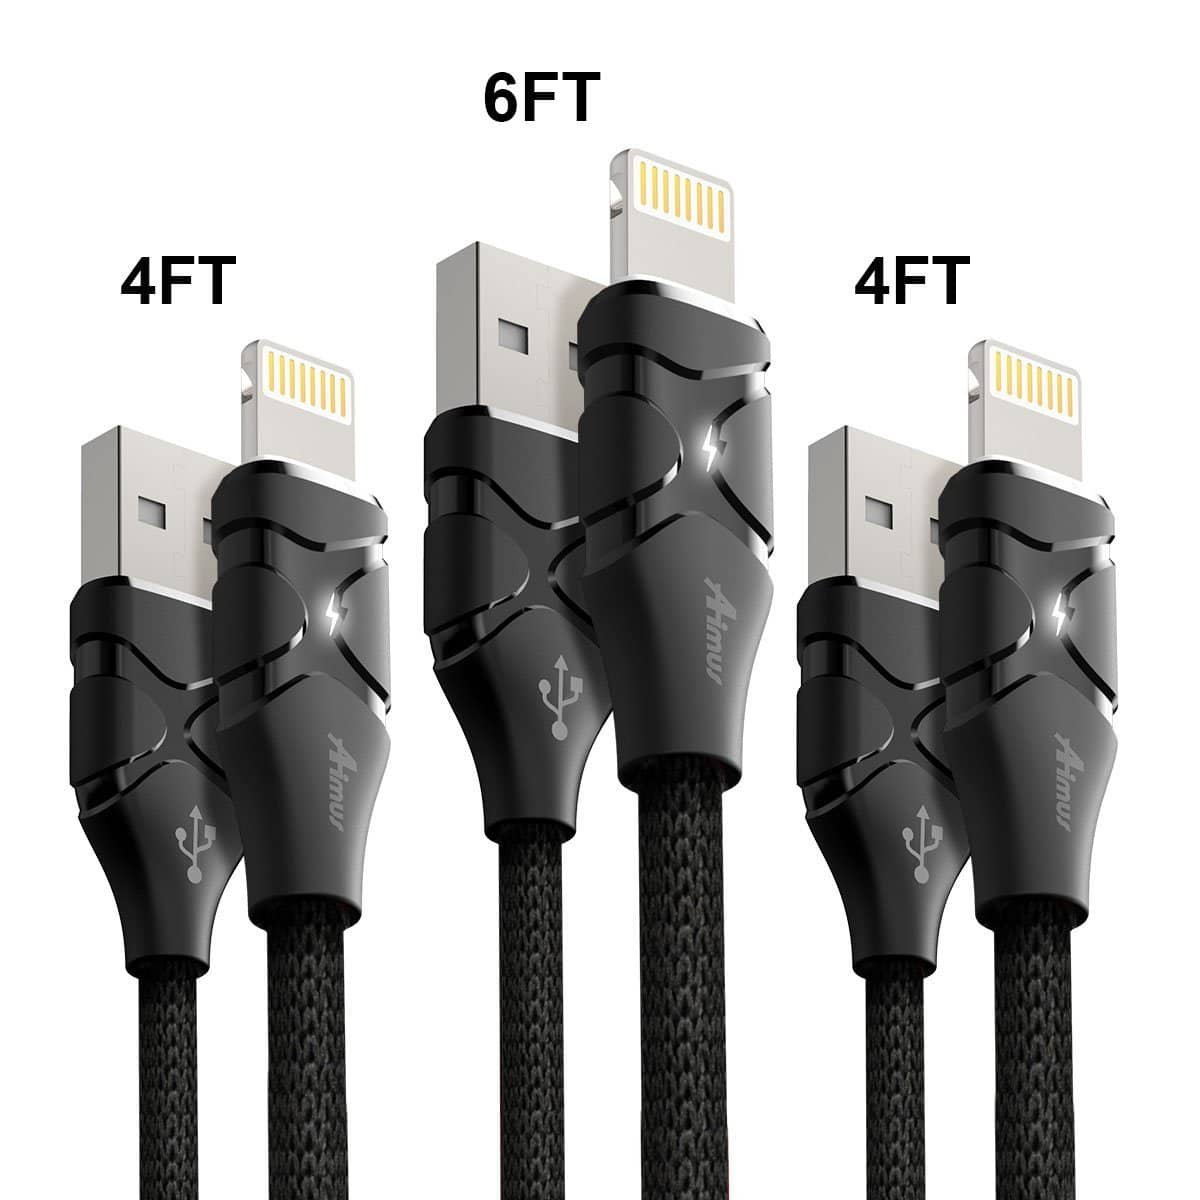 Aimus Lightning Cable [3-Pack] Cotton Braided (Free Prime Shipping) $7.79